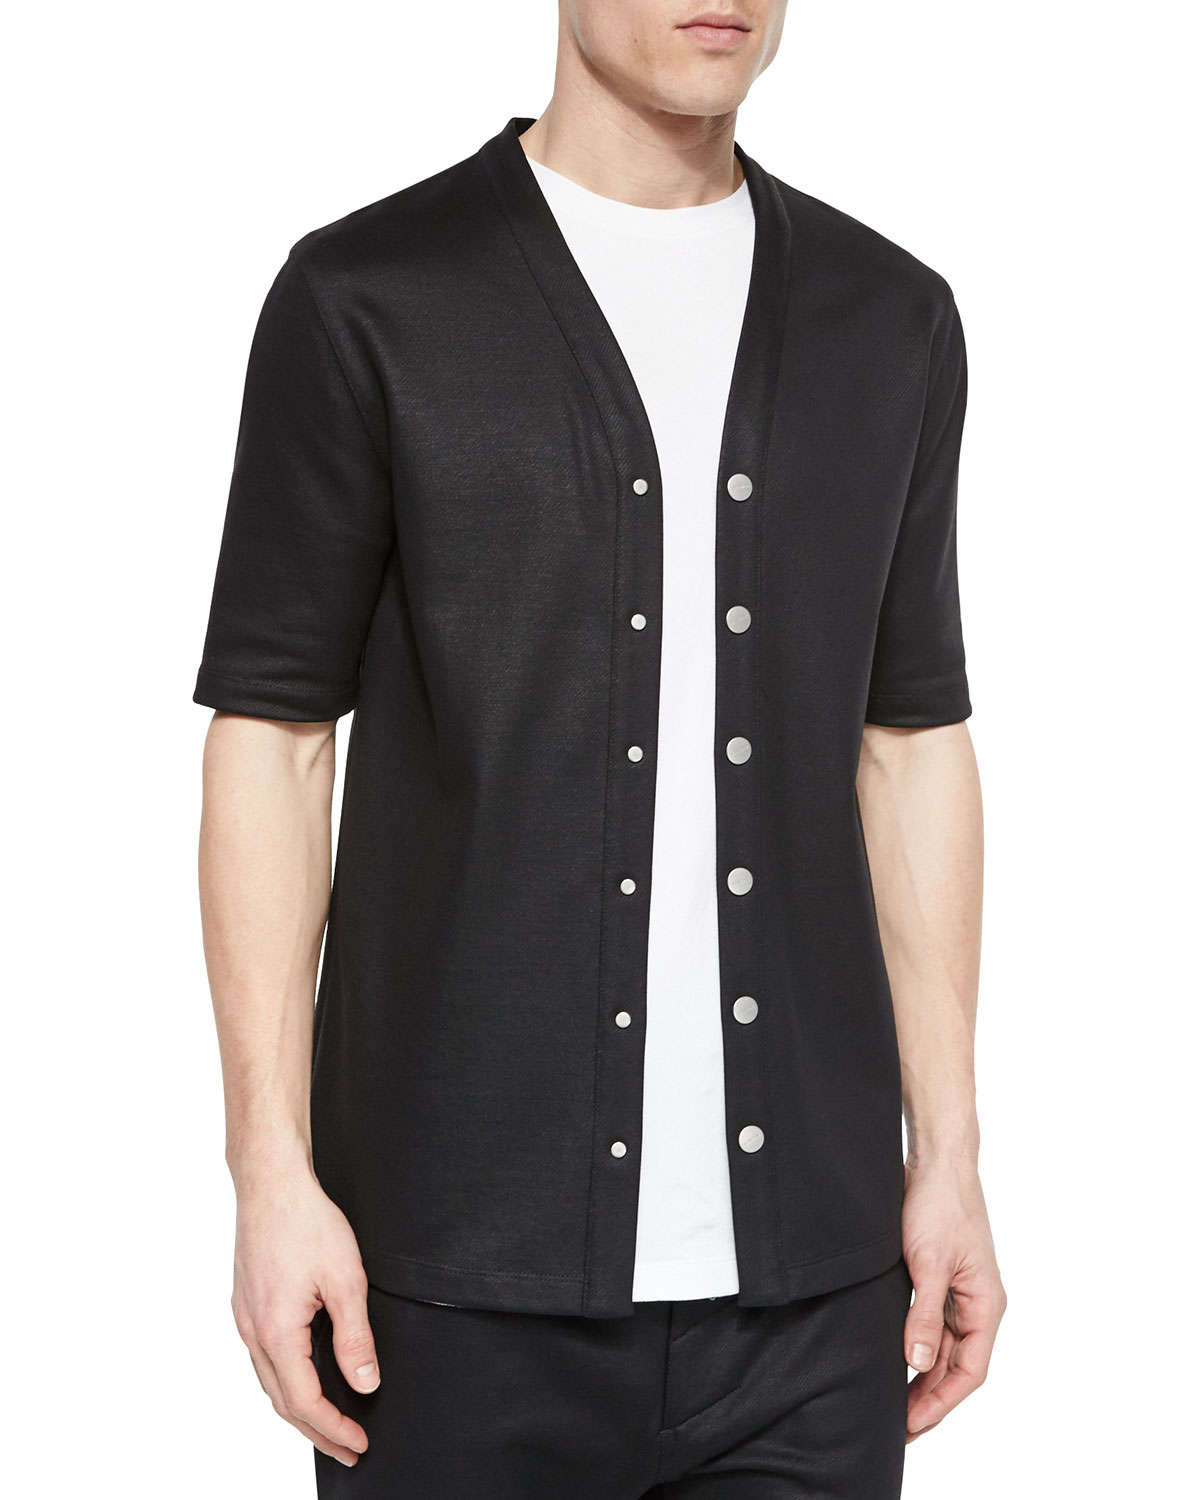 helmut lang cotton button down baseball jersey shirt in